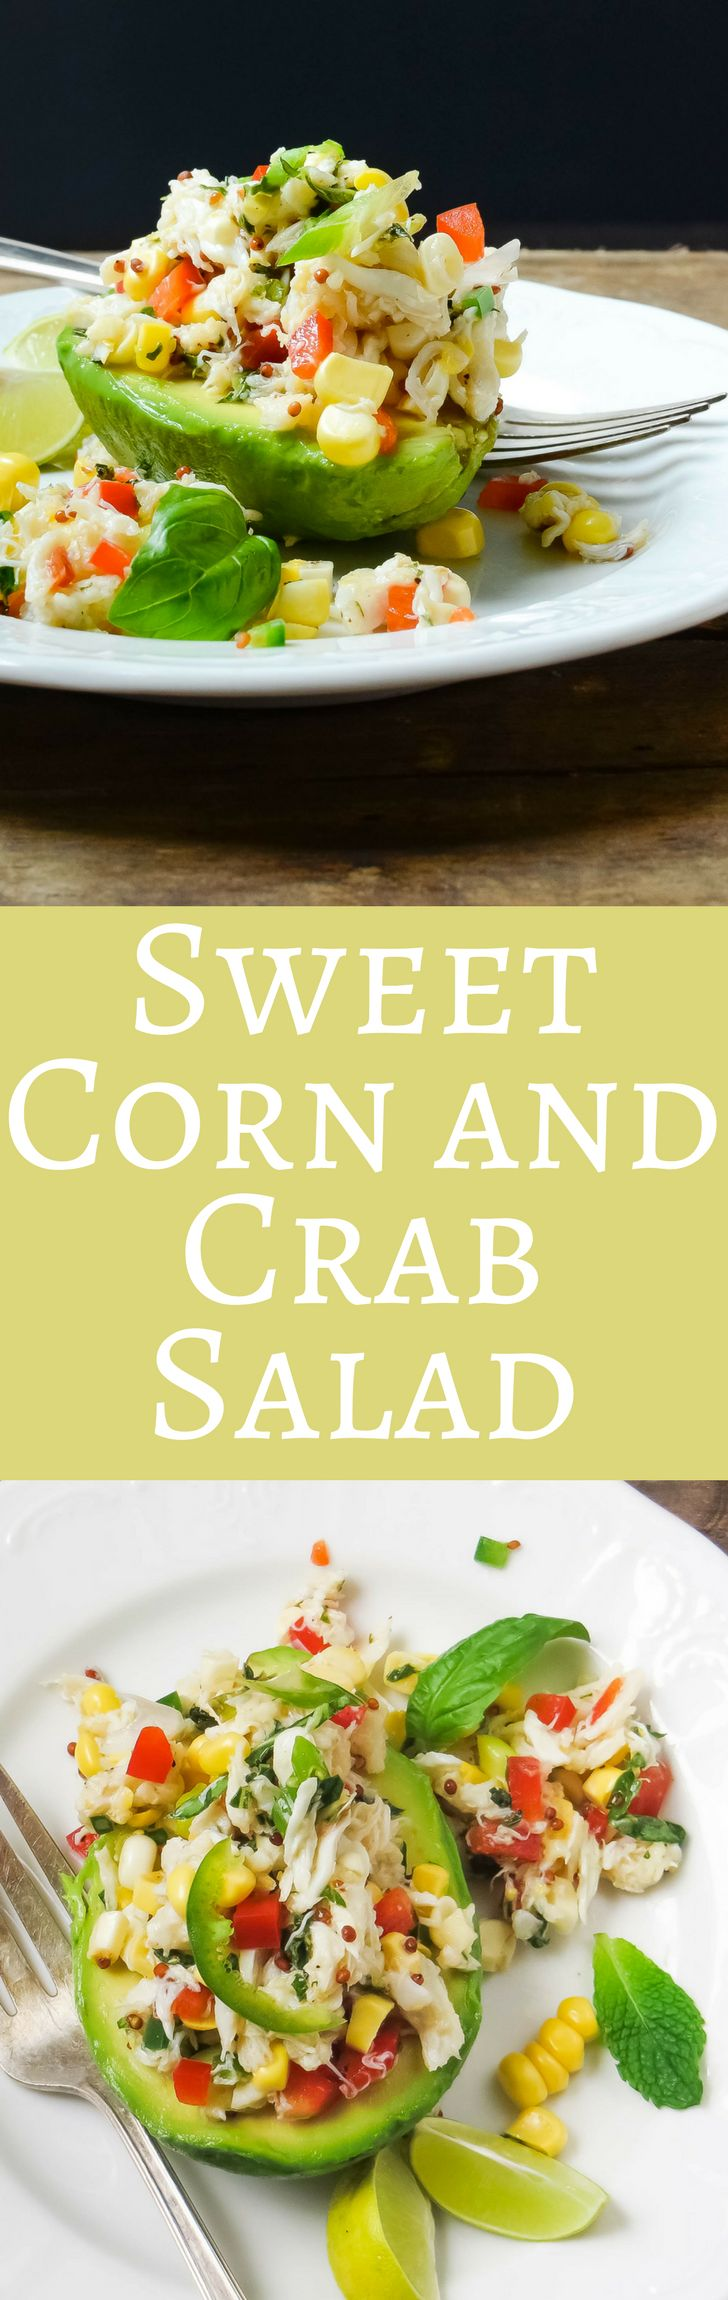 An easy no-cook summer recipe, this Sweet Corn and Crab Salad is delicious for a special appetizer or main course.